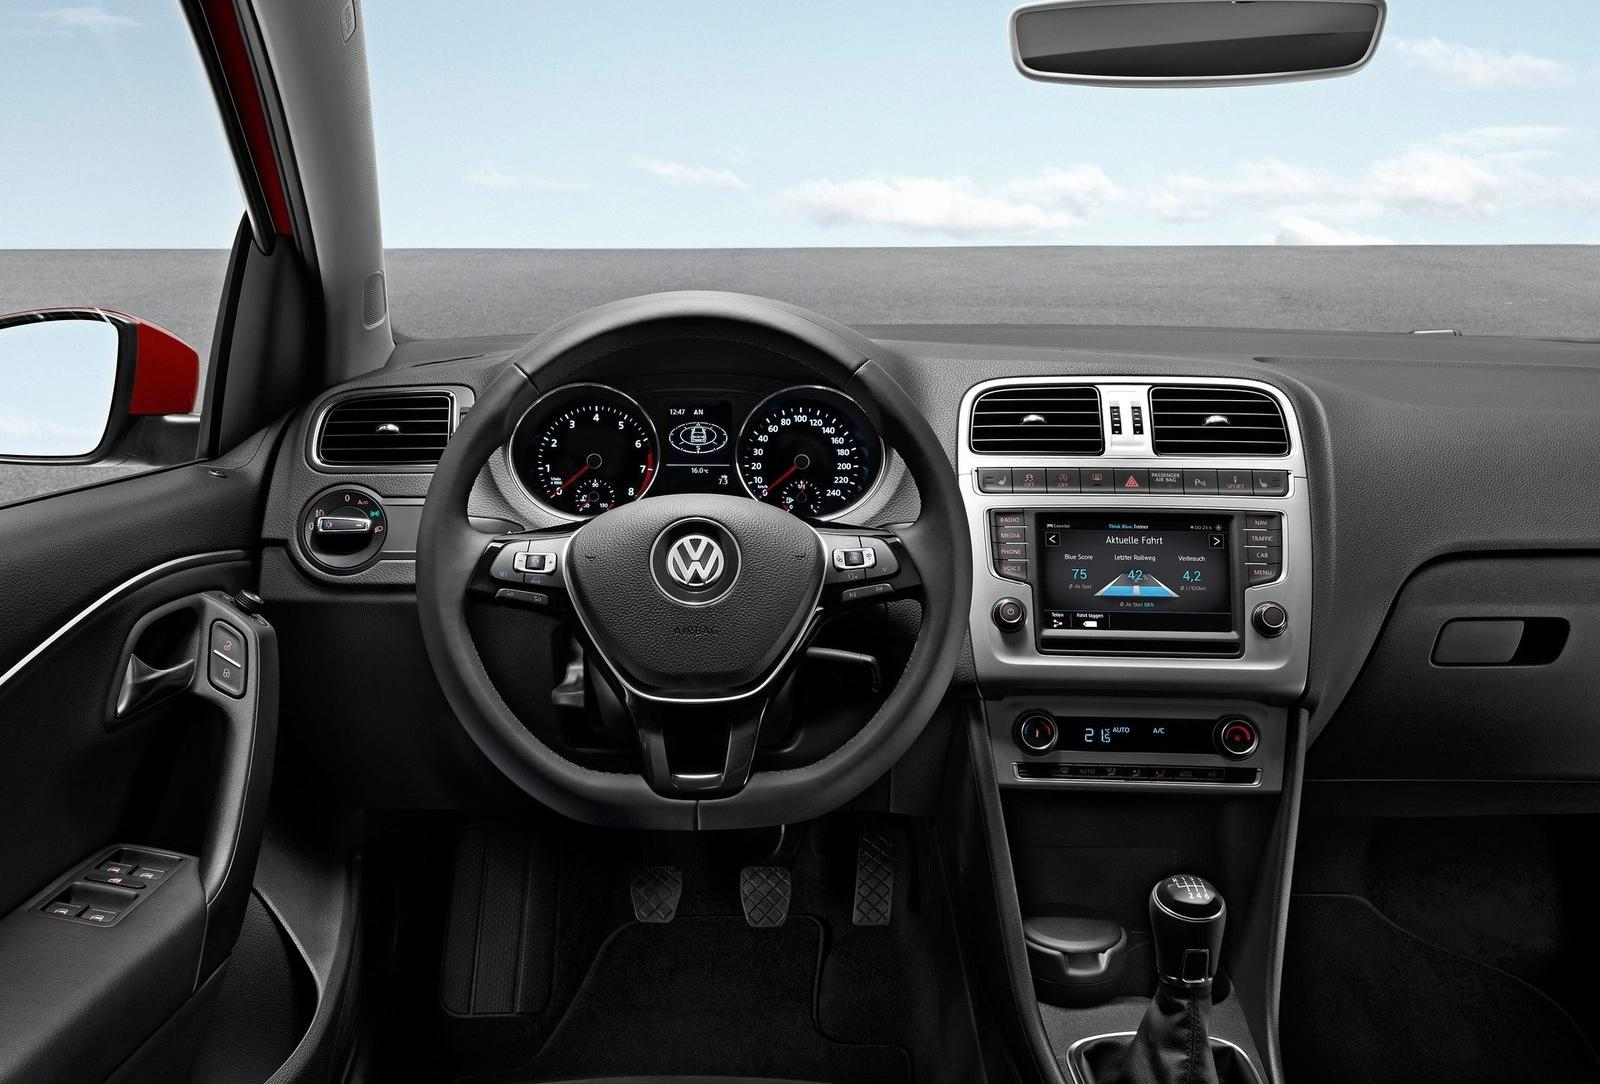 volkswagen lance sa polo 1 0 tsi bluemotion moteur 3 cylindres. Black Bedroom Furniture Sets. Home Design Ideas